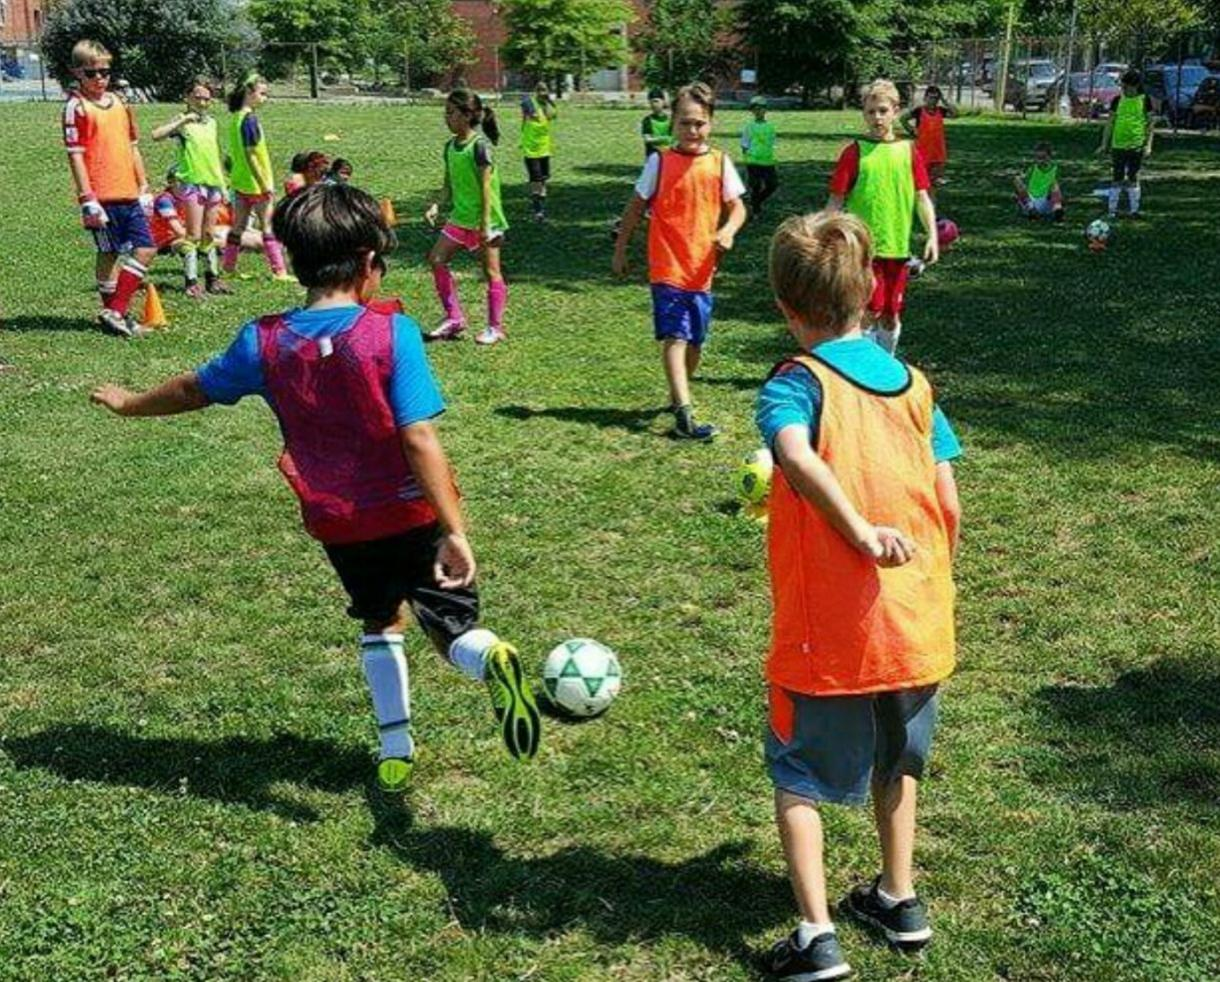 $63 for DC Way Winter Soccer Clinics for Ages 7-14 in Washington DC ($84 Value - 25% Off)